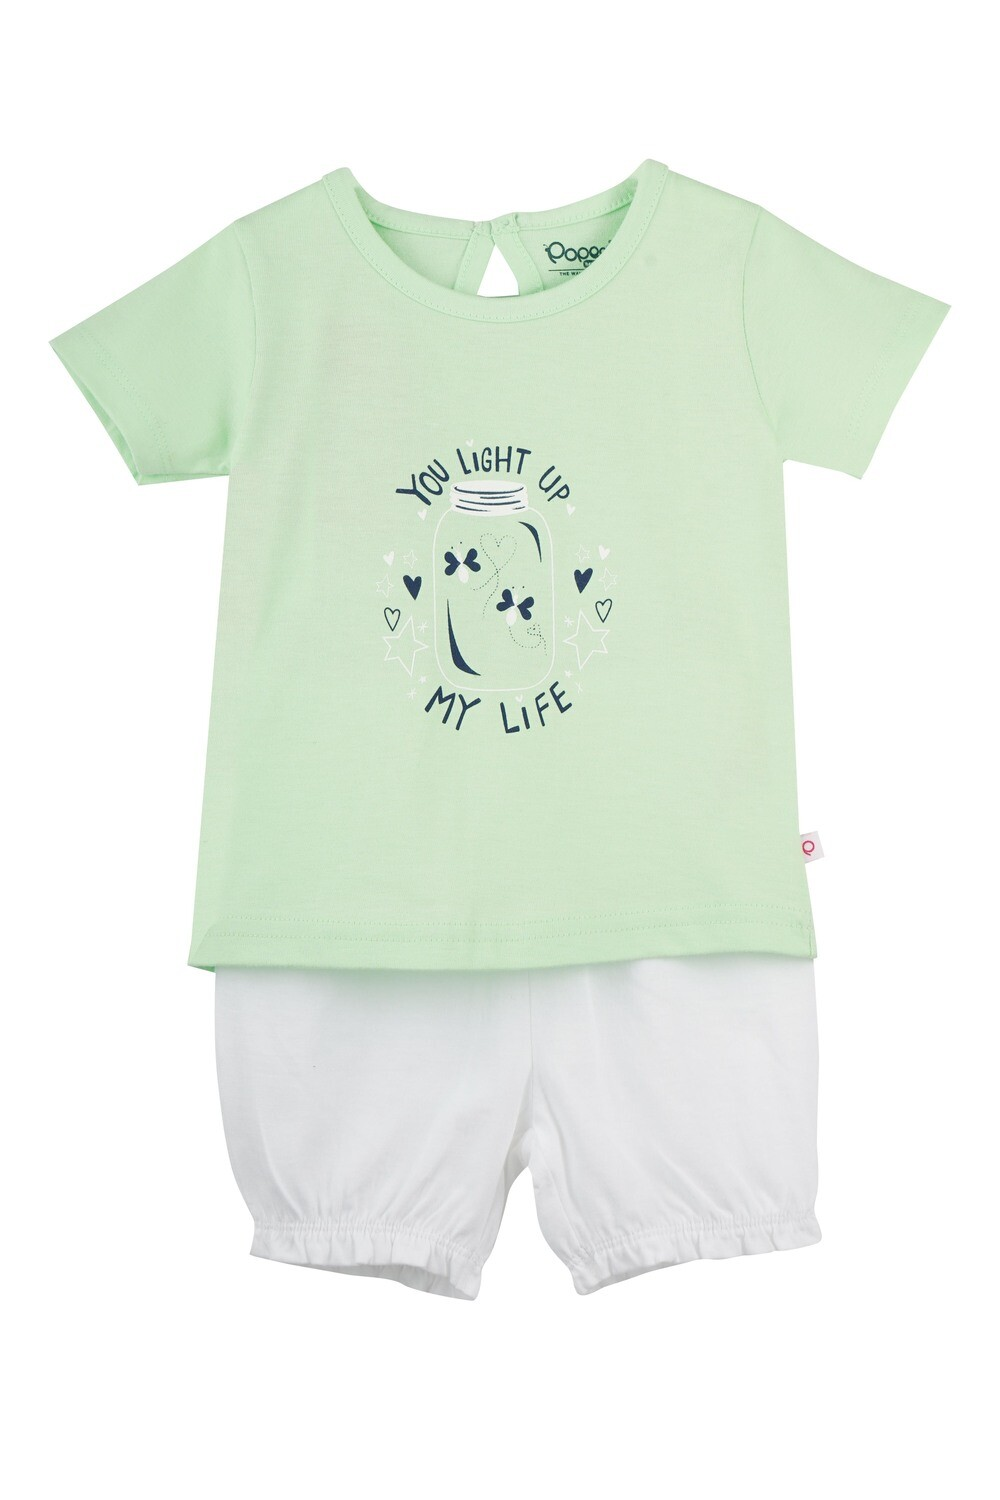 UNICORN Patina Green Half sleeve Top and Trouser for Baby Girls